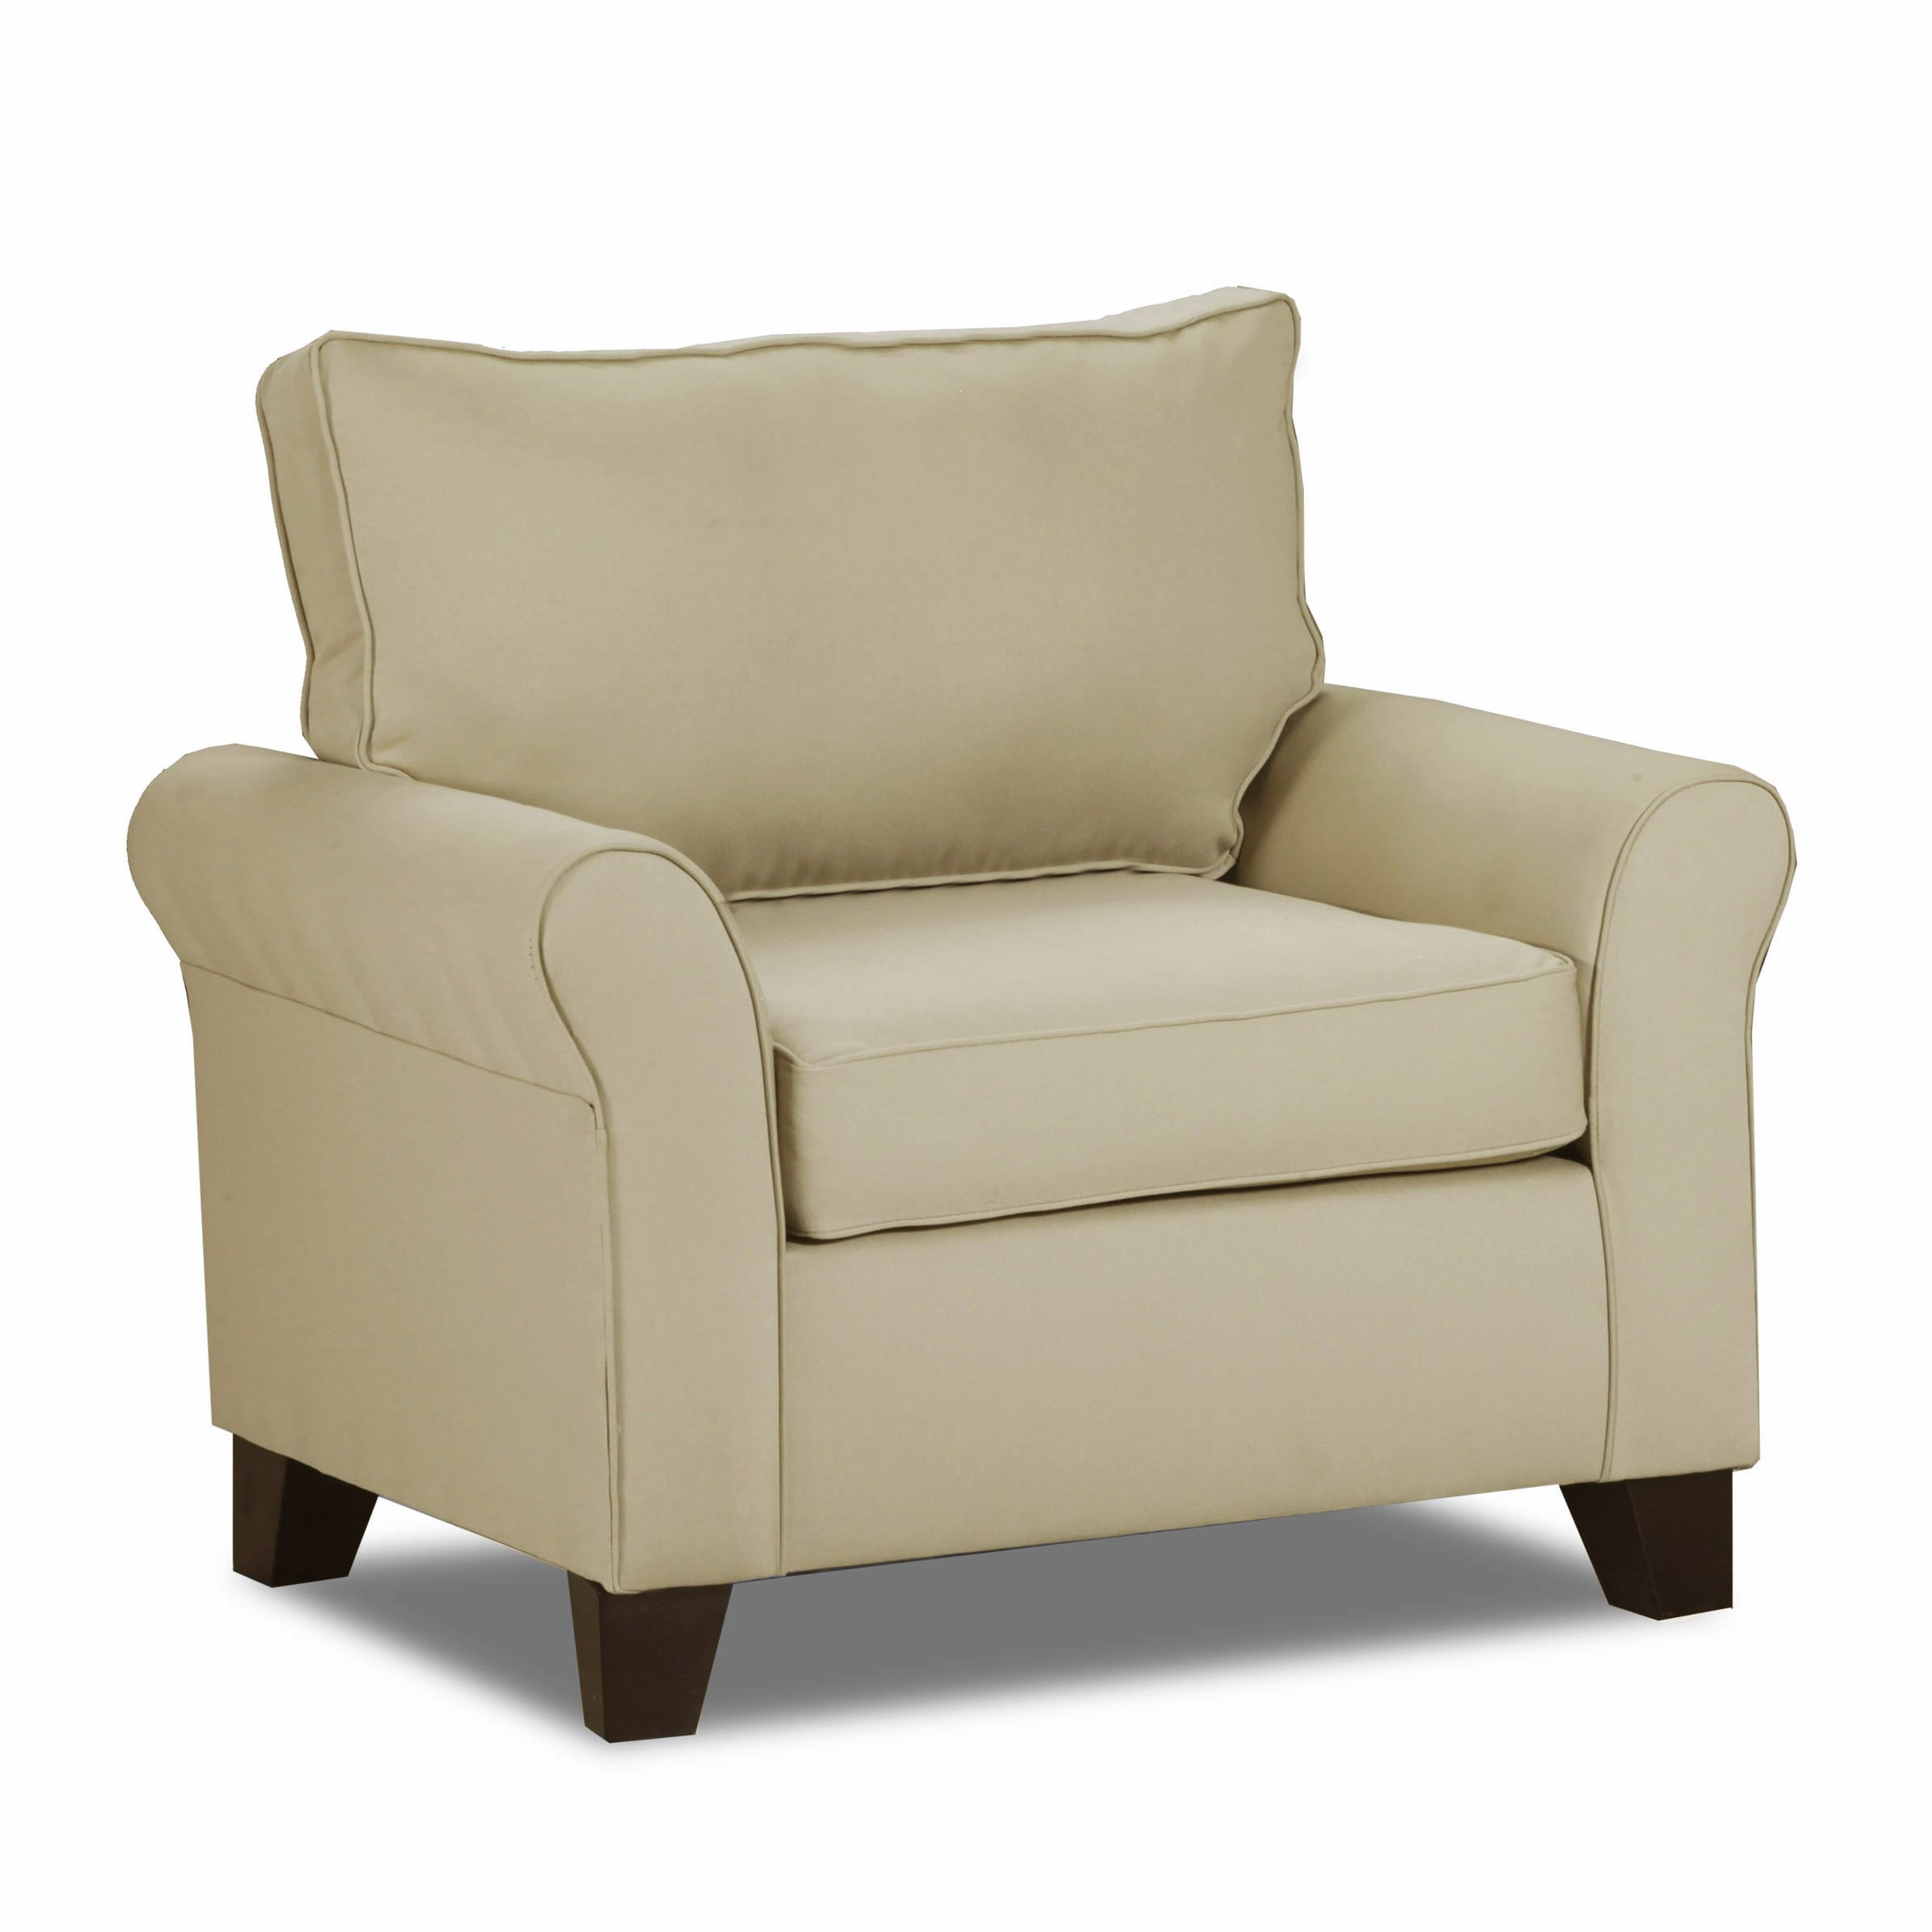 Carolina Accents Belle Meade Armchair by Overstock